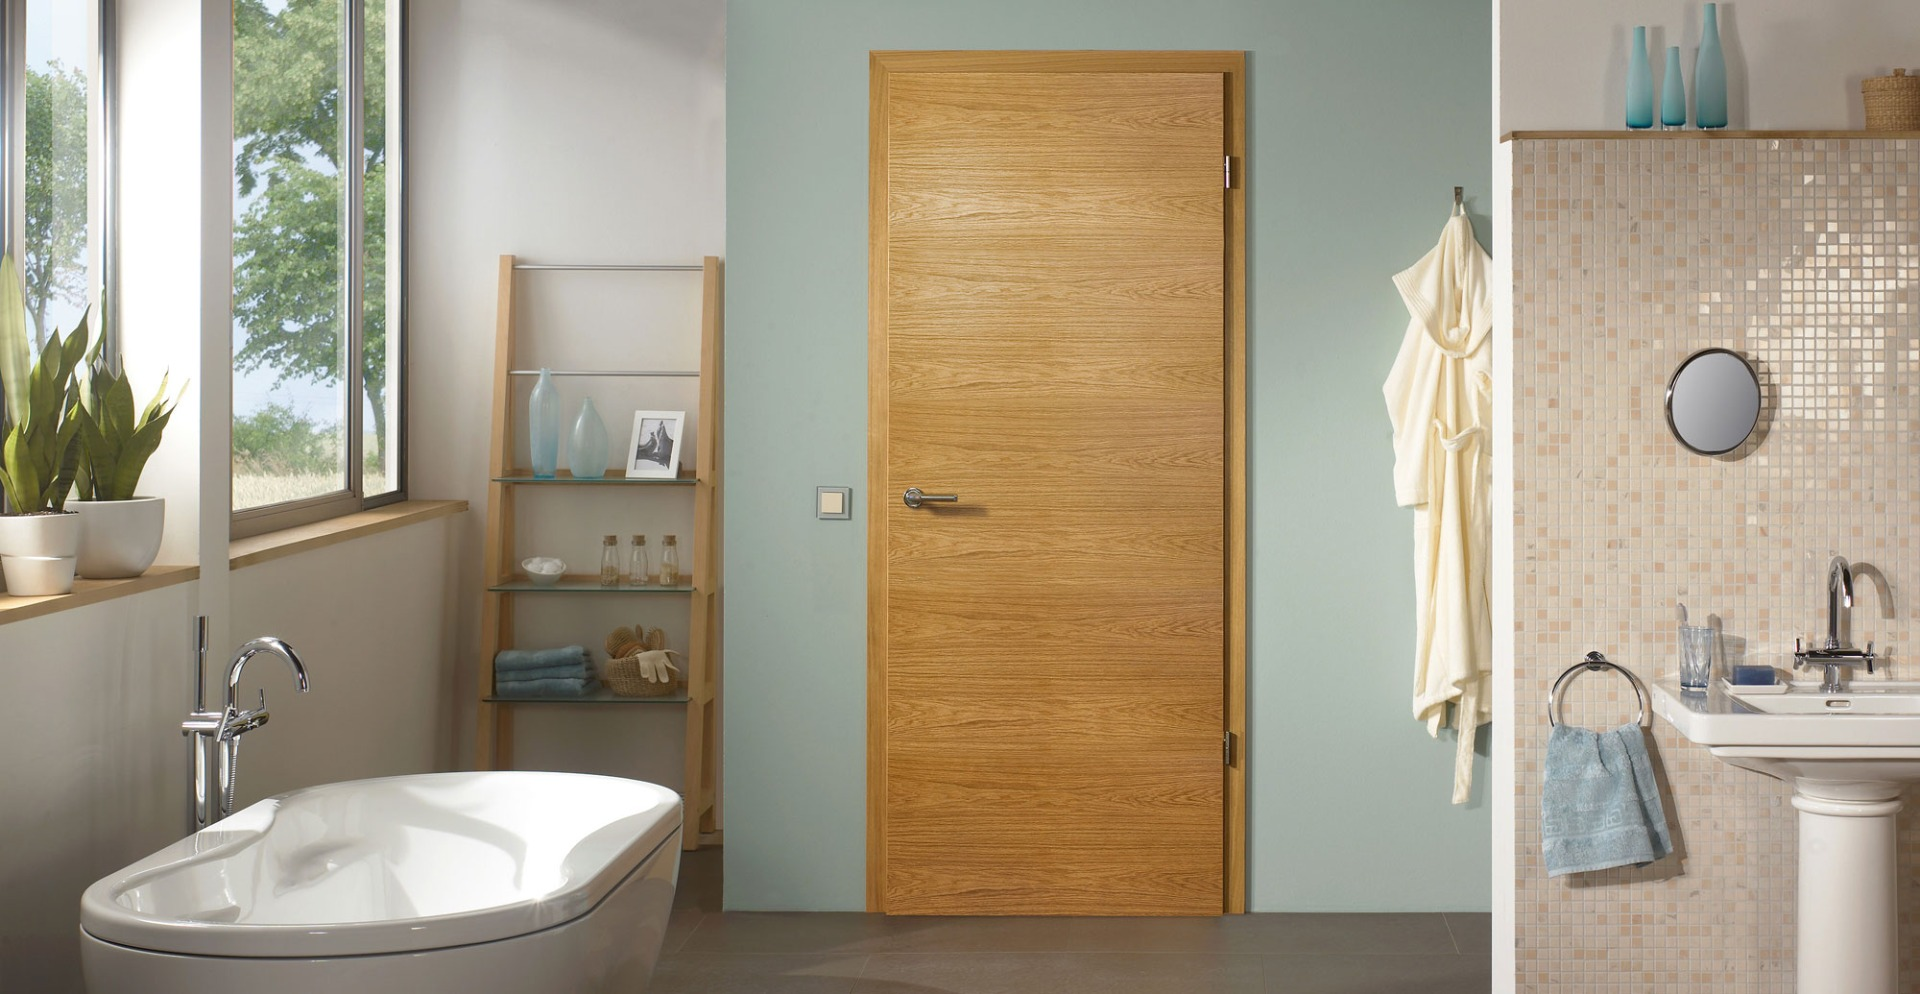 Oak Doors UK - The best selection of Solid and Veneer Wooden Doors